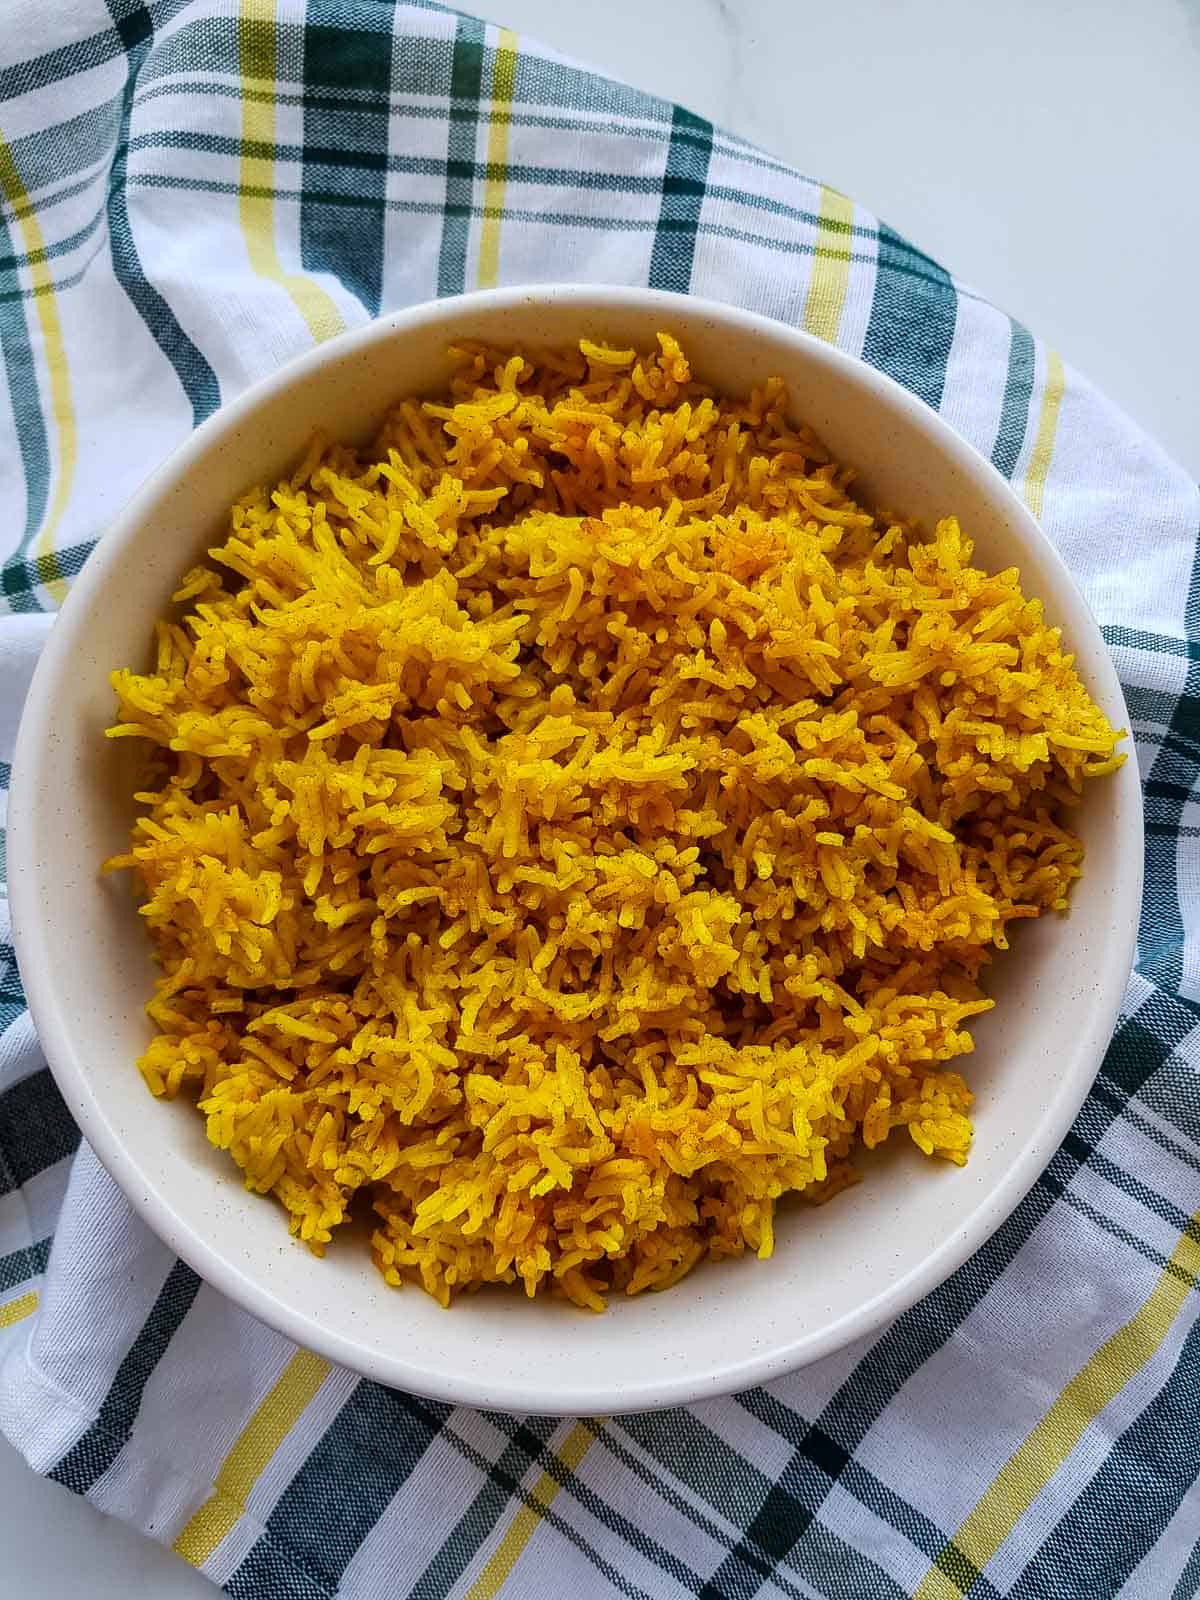 Cooked turmeric rice in a bowl.